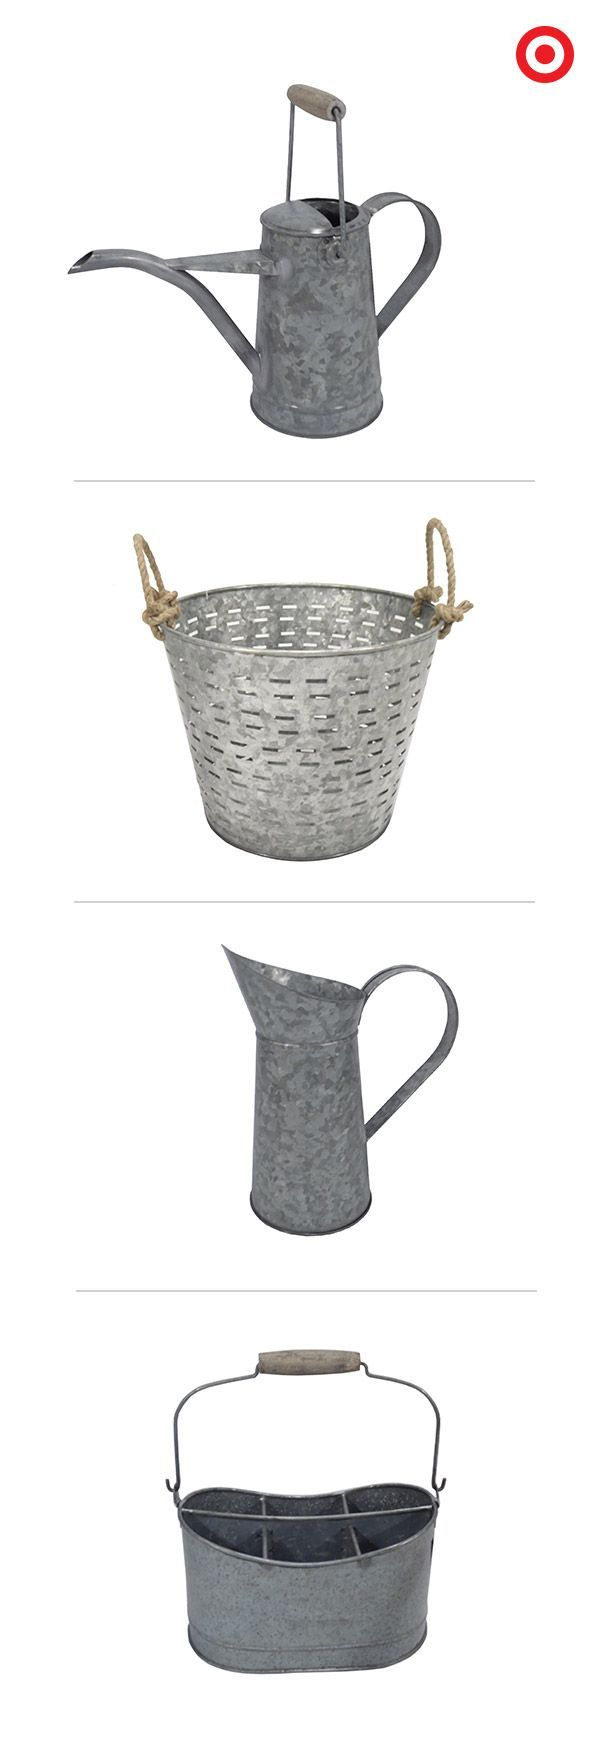 Add the vintage look of galvanized metal to your backyard and garden. Threshold offers two styles of watering cans, a two-handle basket and a convenient garden tote. All have a powder-coated finish, and are are both weather resistant and rust resistant. Choose your favorites and make them part of your outdoor collection.